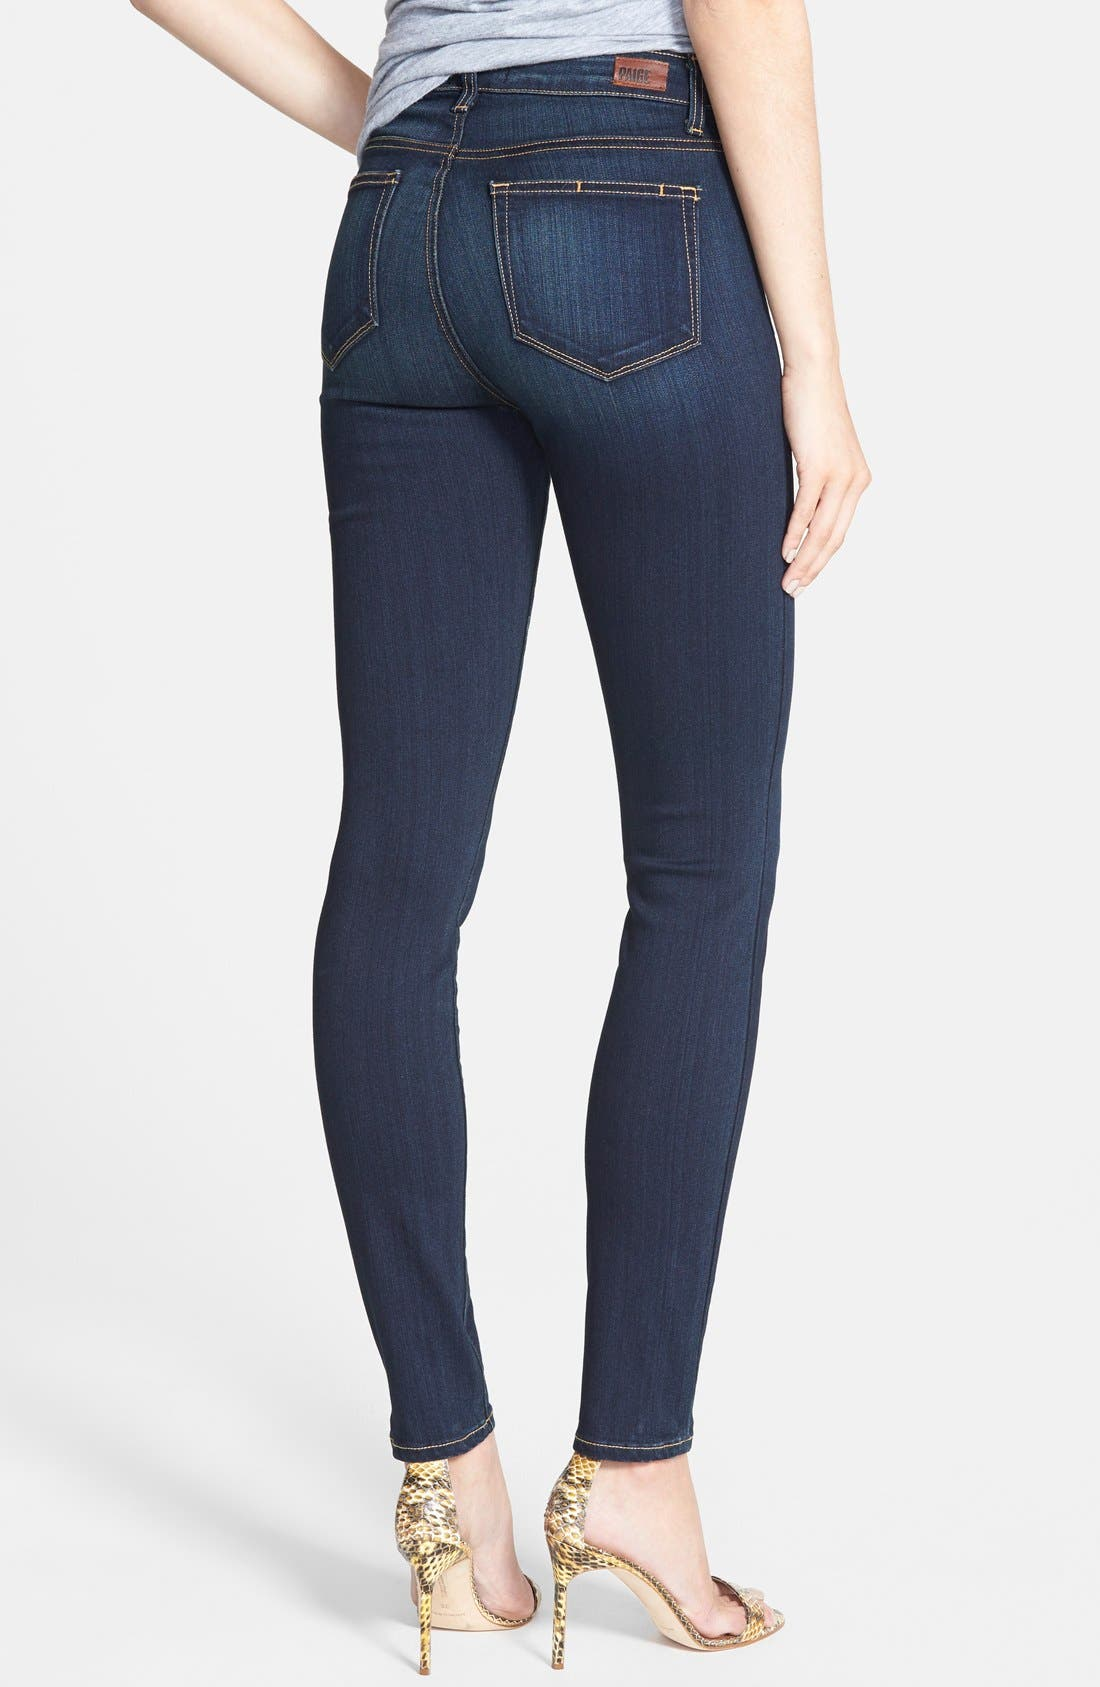 PAIGE, 'Transcend - Margot' High Rise Ultra Skinny Stretch Jeans, Alternate thumbnail 2, color, 400